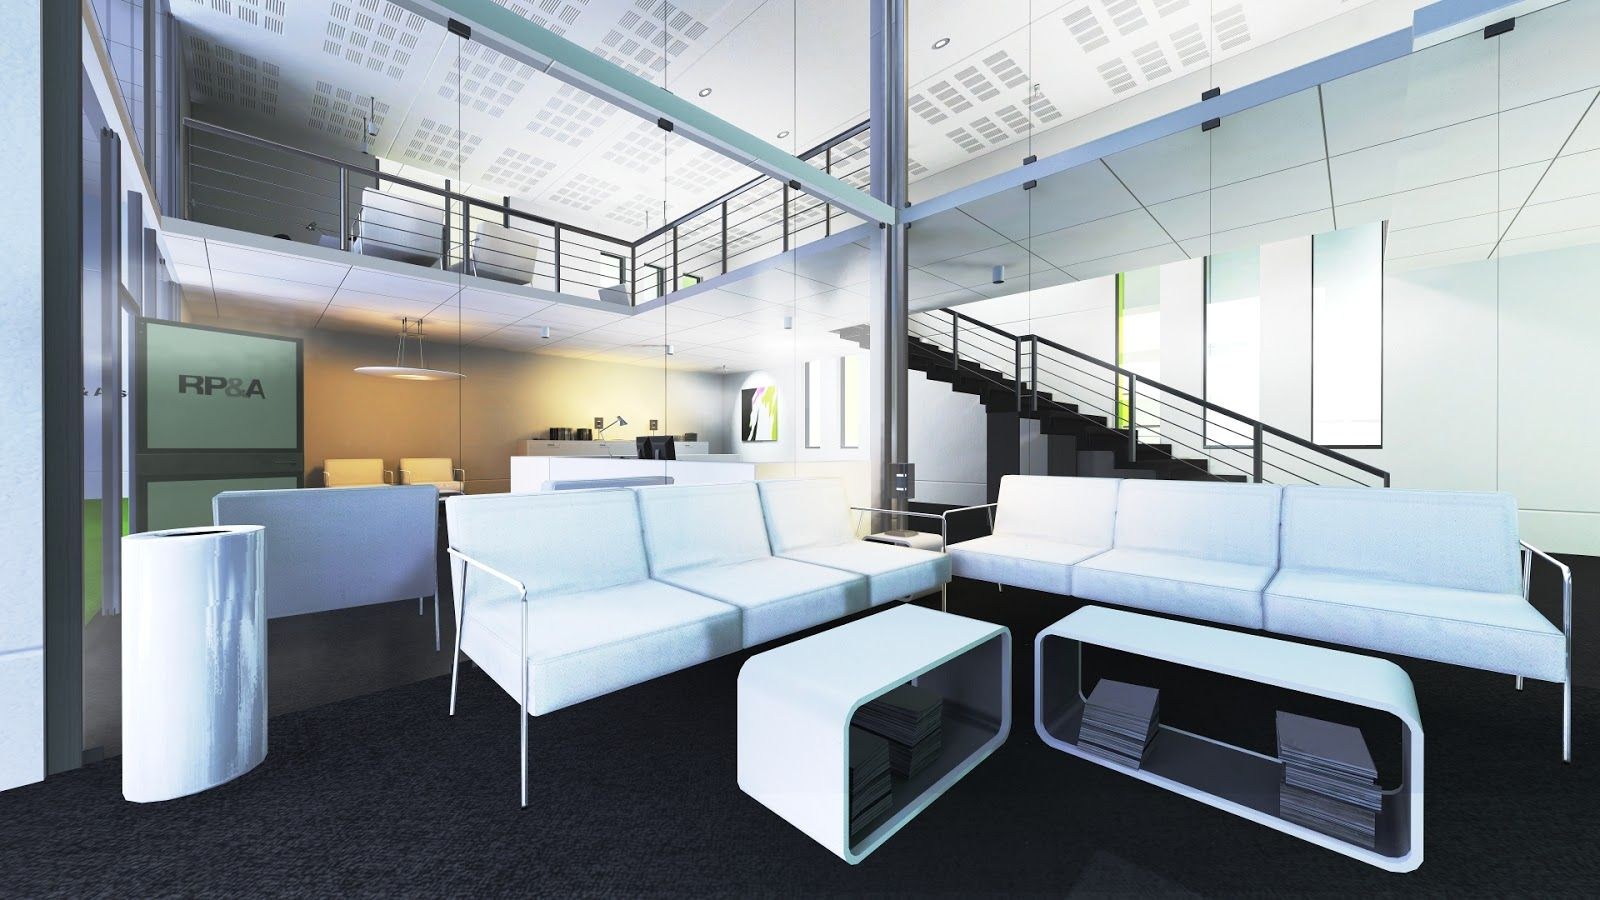 Architecture & Interior Design Mirrors Edge Design Spaces